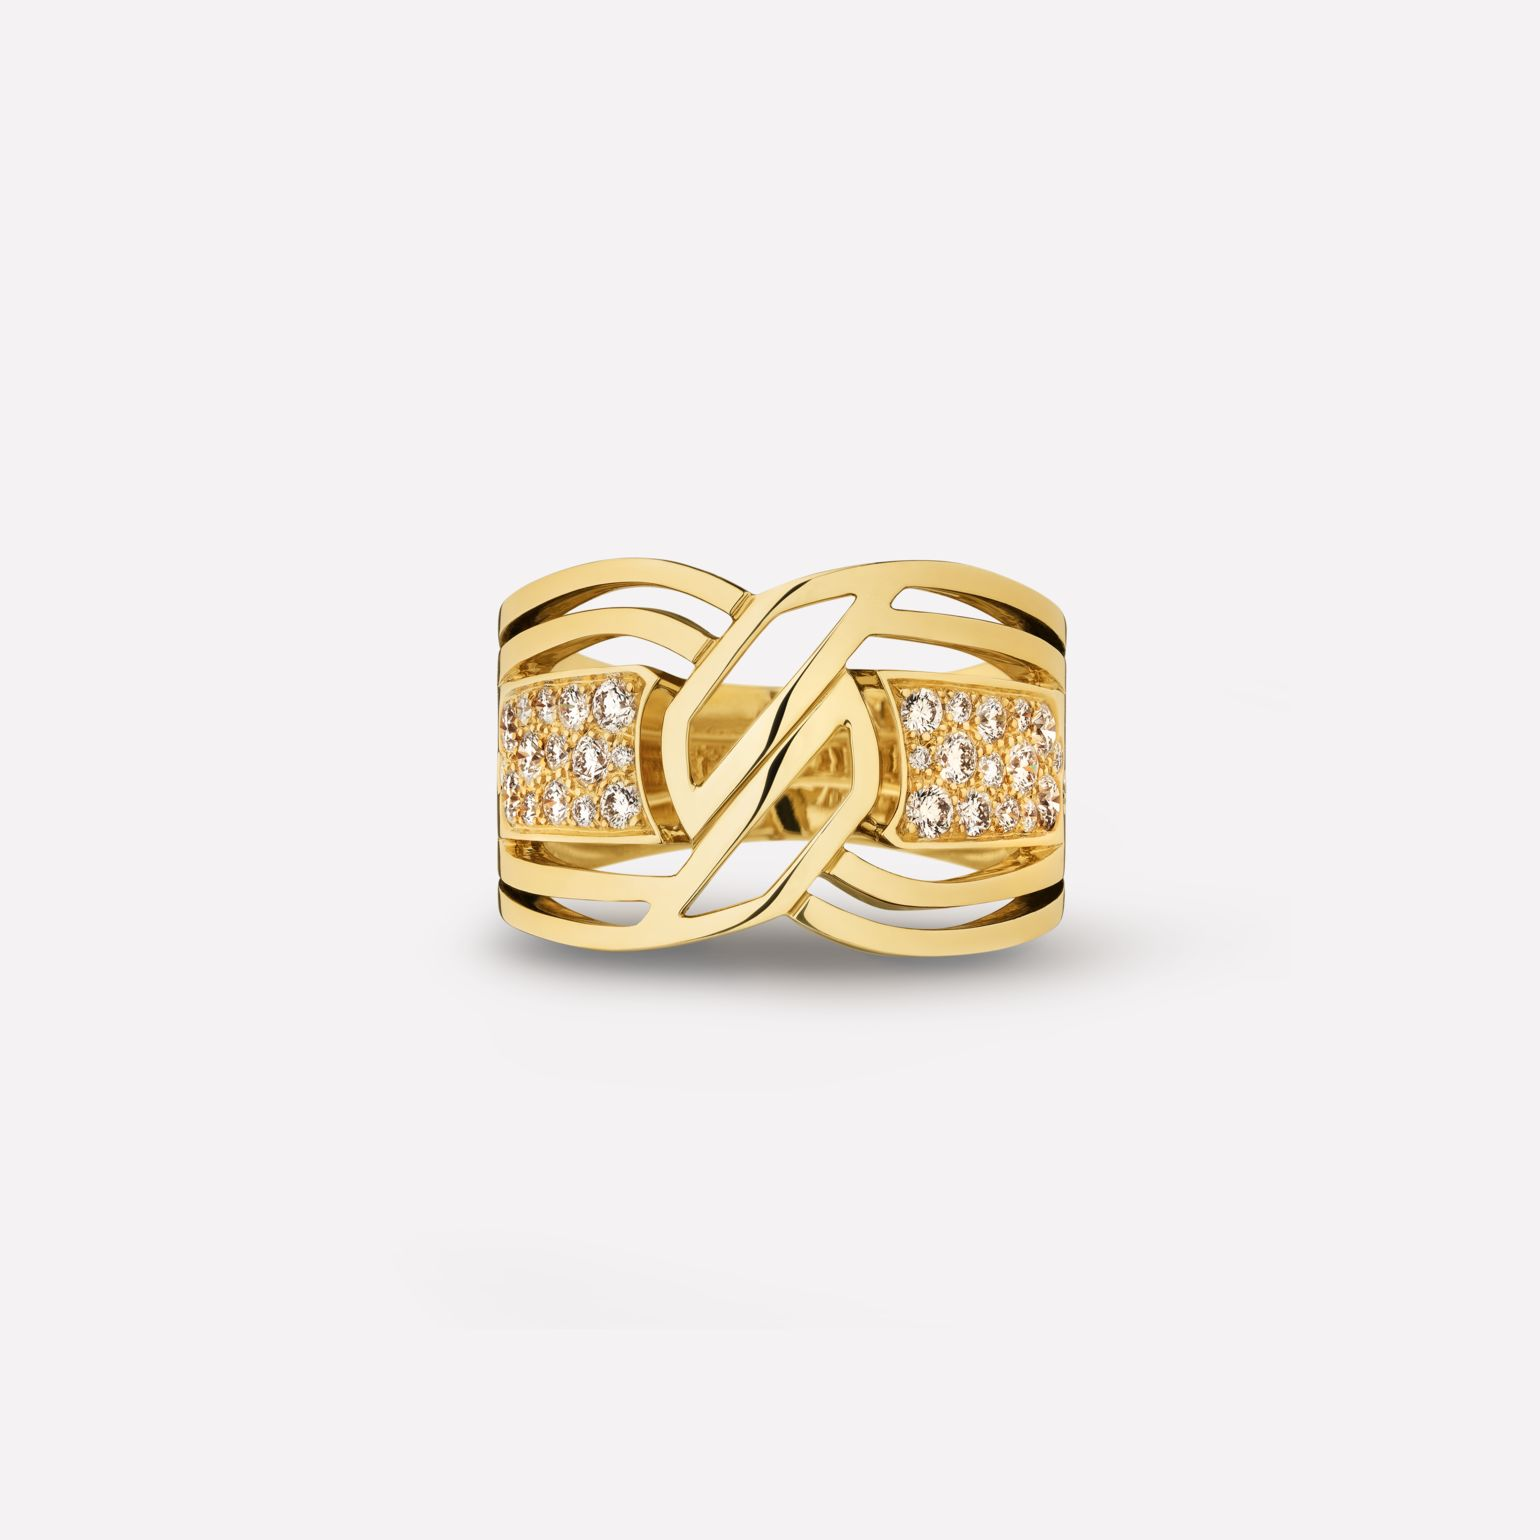 Anillo My Golden Link Oro amarillo de 18 quilates y diamantes